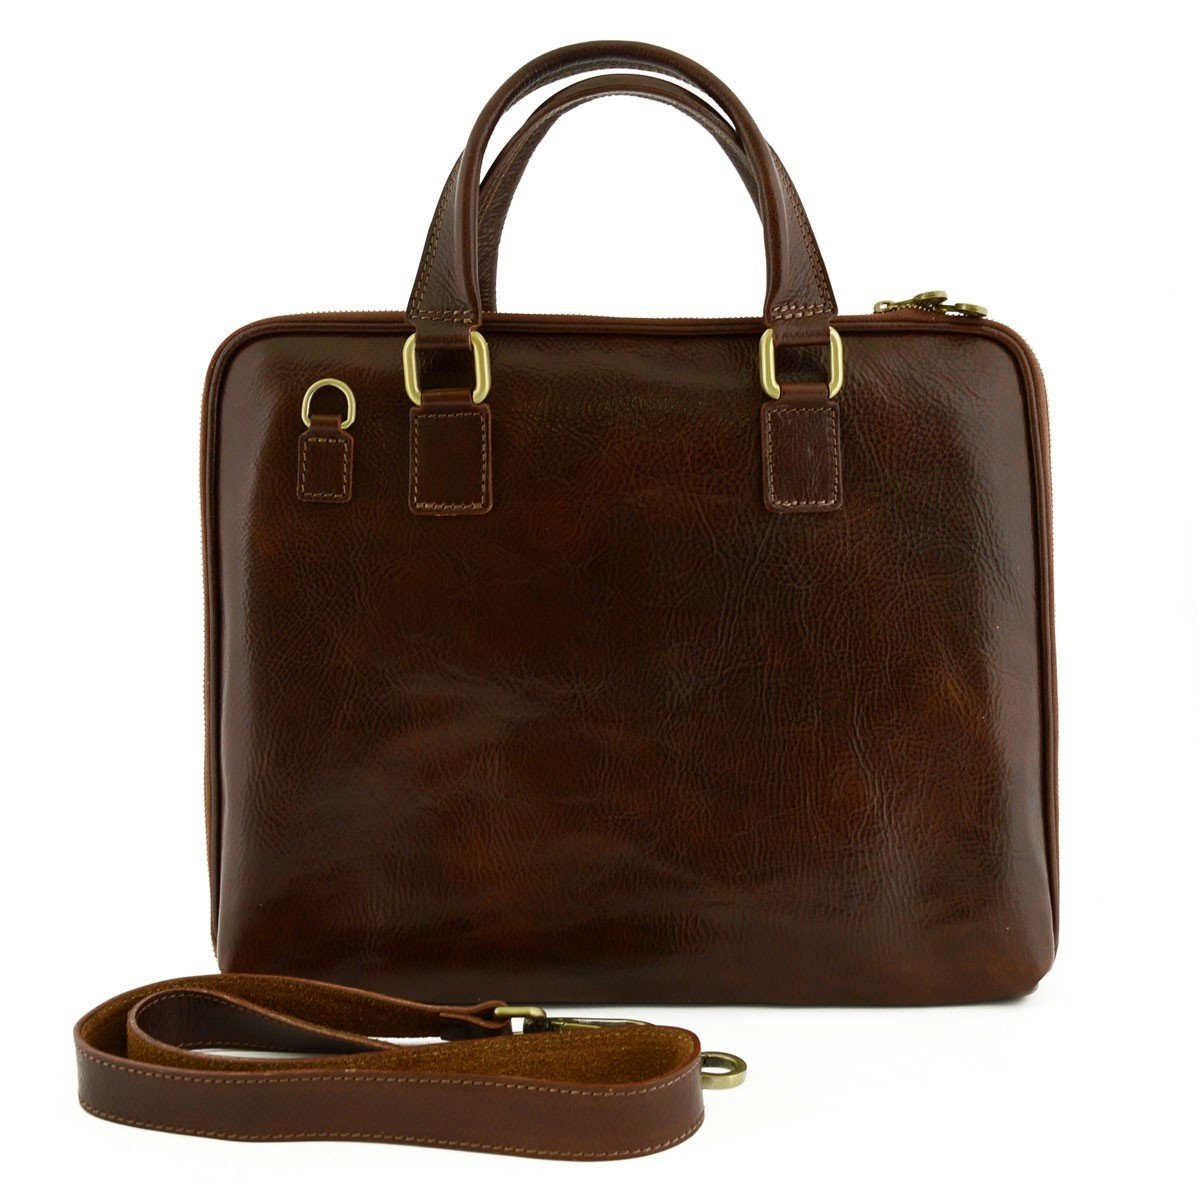 Made In Italy Genuine Leather Briefcase With Zip Closure And Side Bellows Color Brown - Business Bag B01BOGNO5G